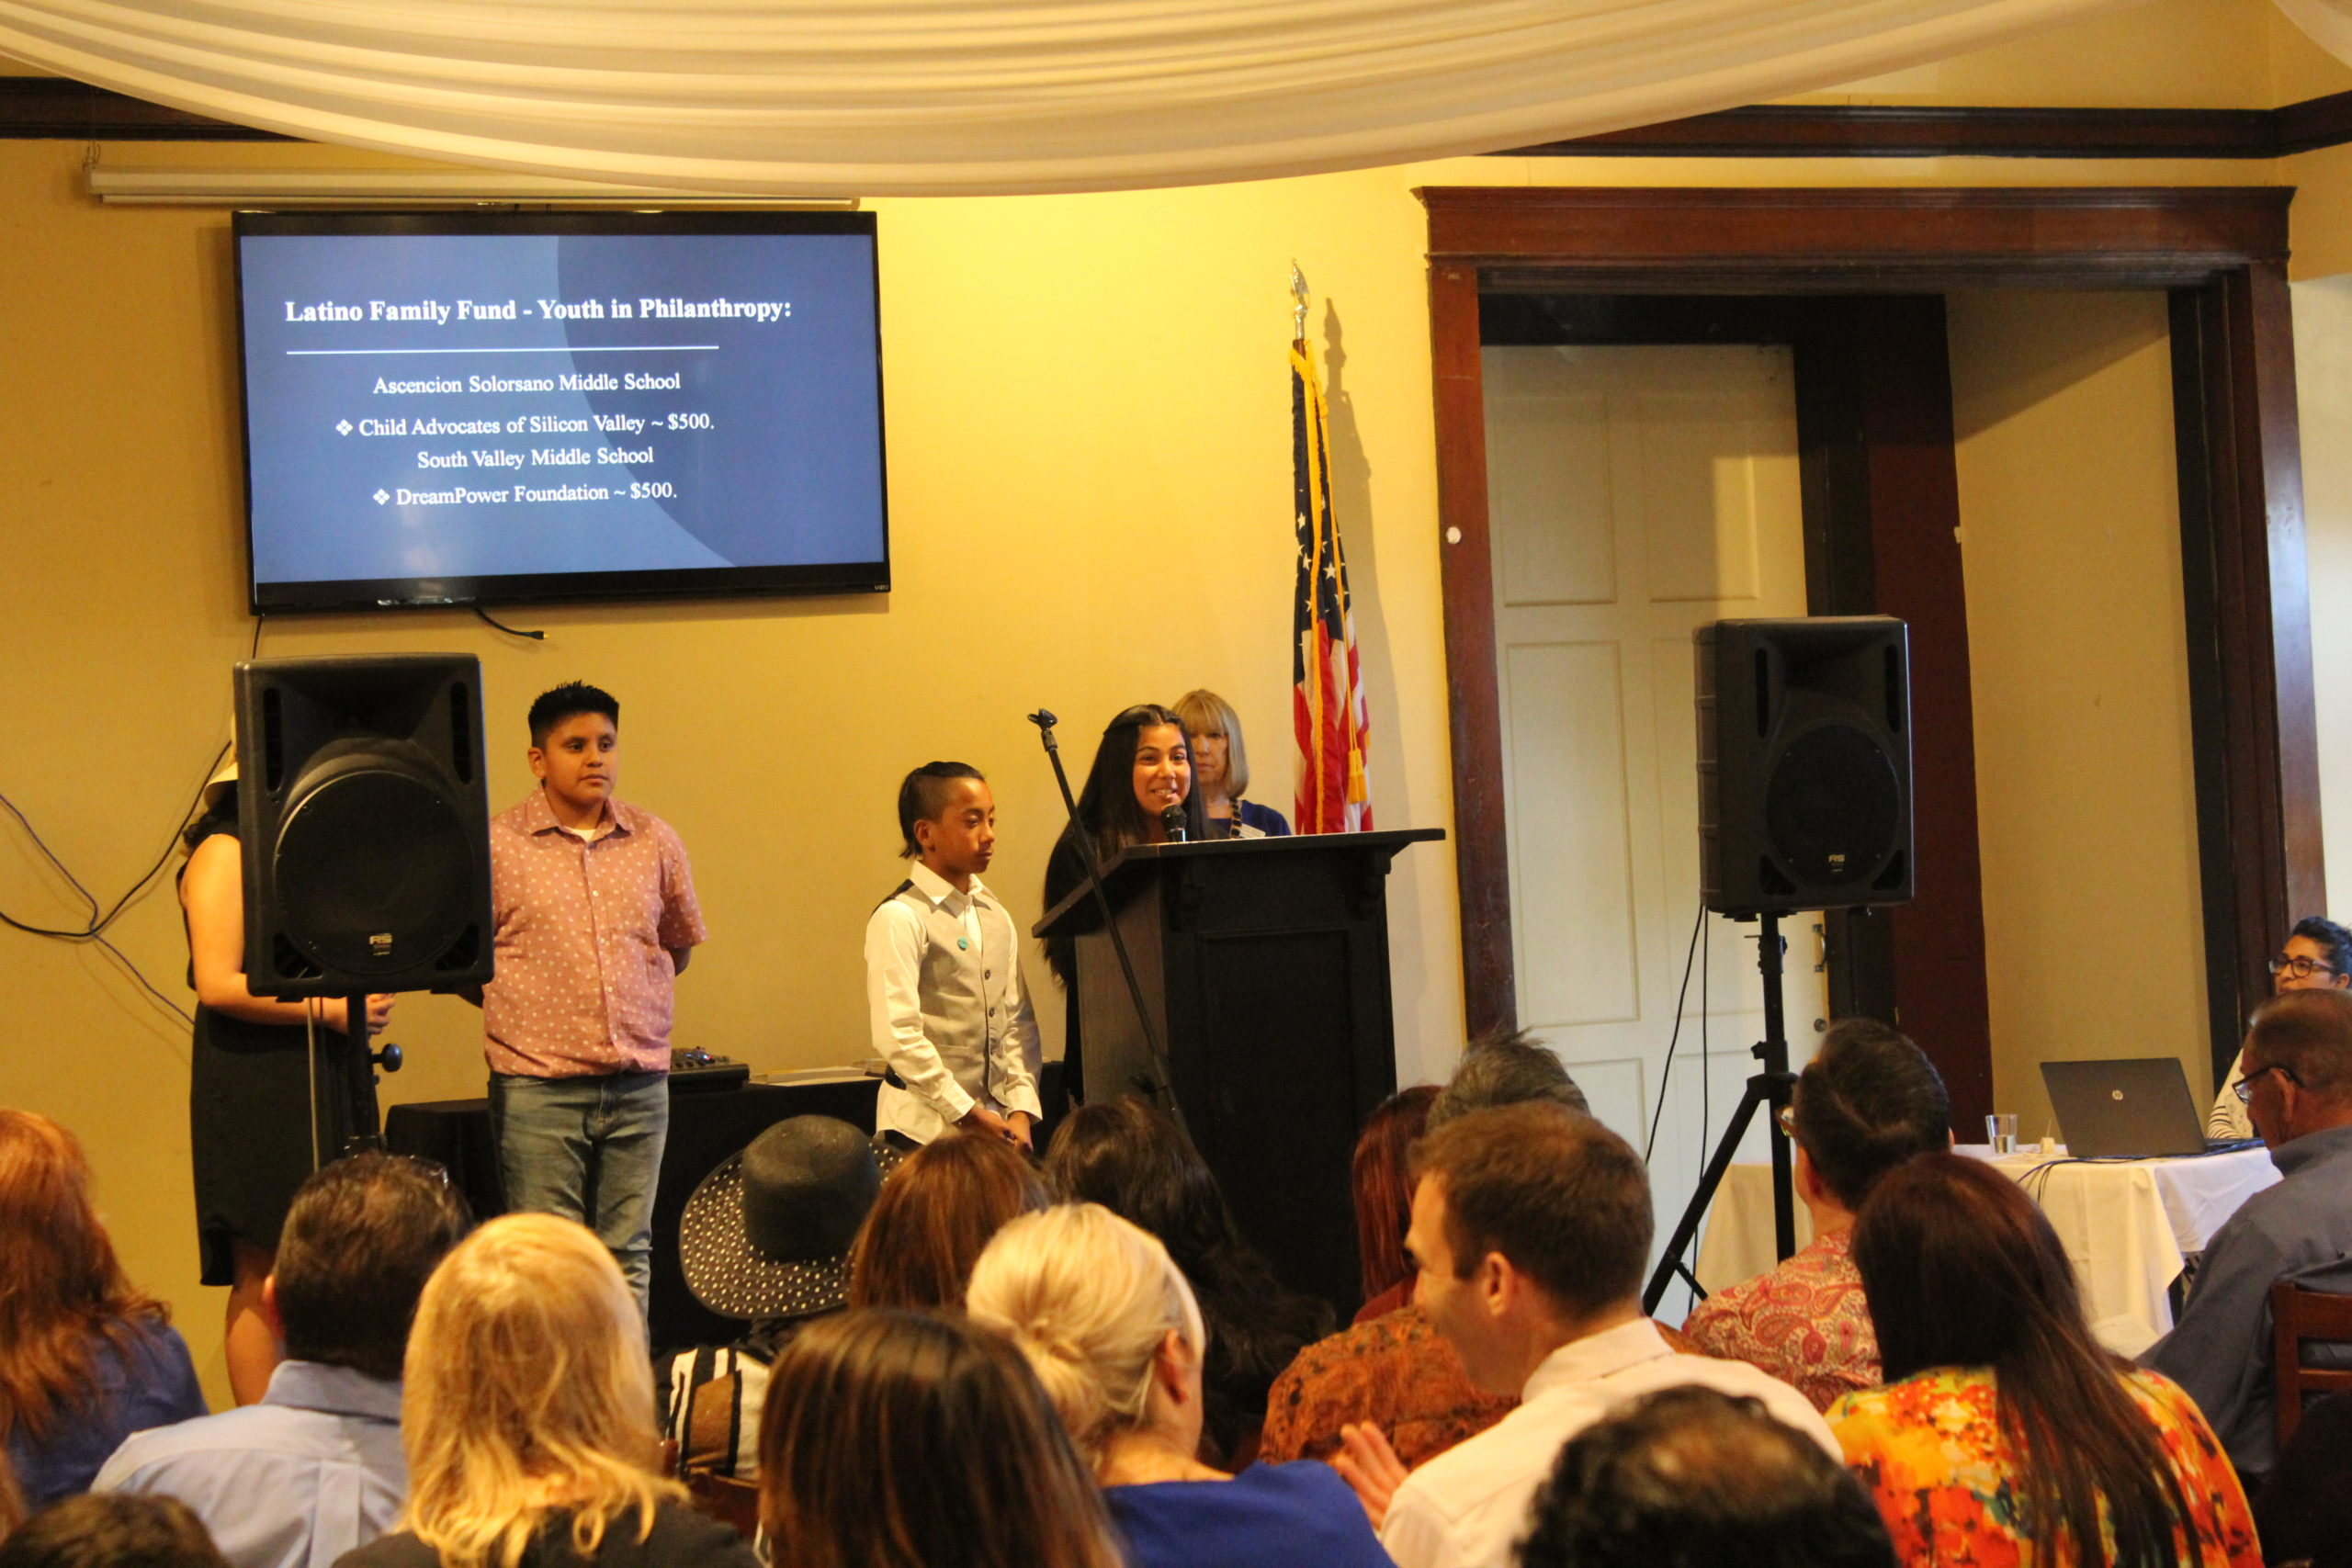 Photo of the Latino Family Fund, Youth In Philanthropy Students speaking on a microphone